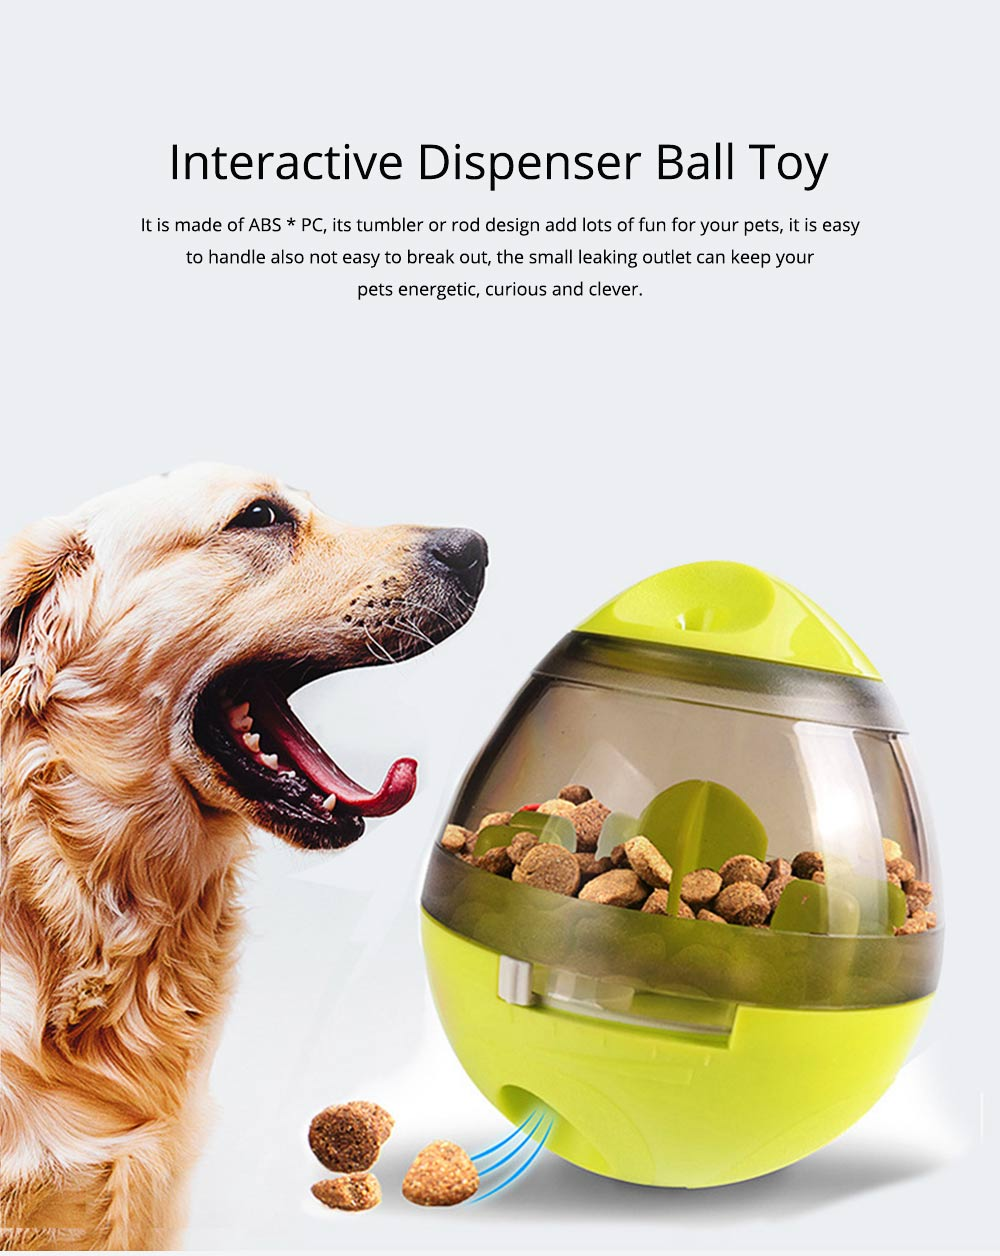 Dog Treat Dispenser Ball Toy Interactive Treat-dispensing Ball for Dogs and Cats Tumbler Design 0